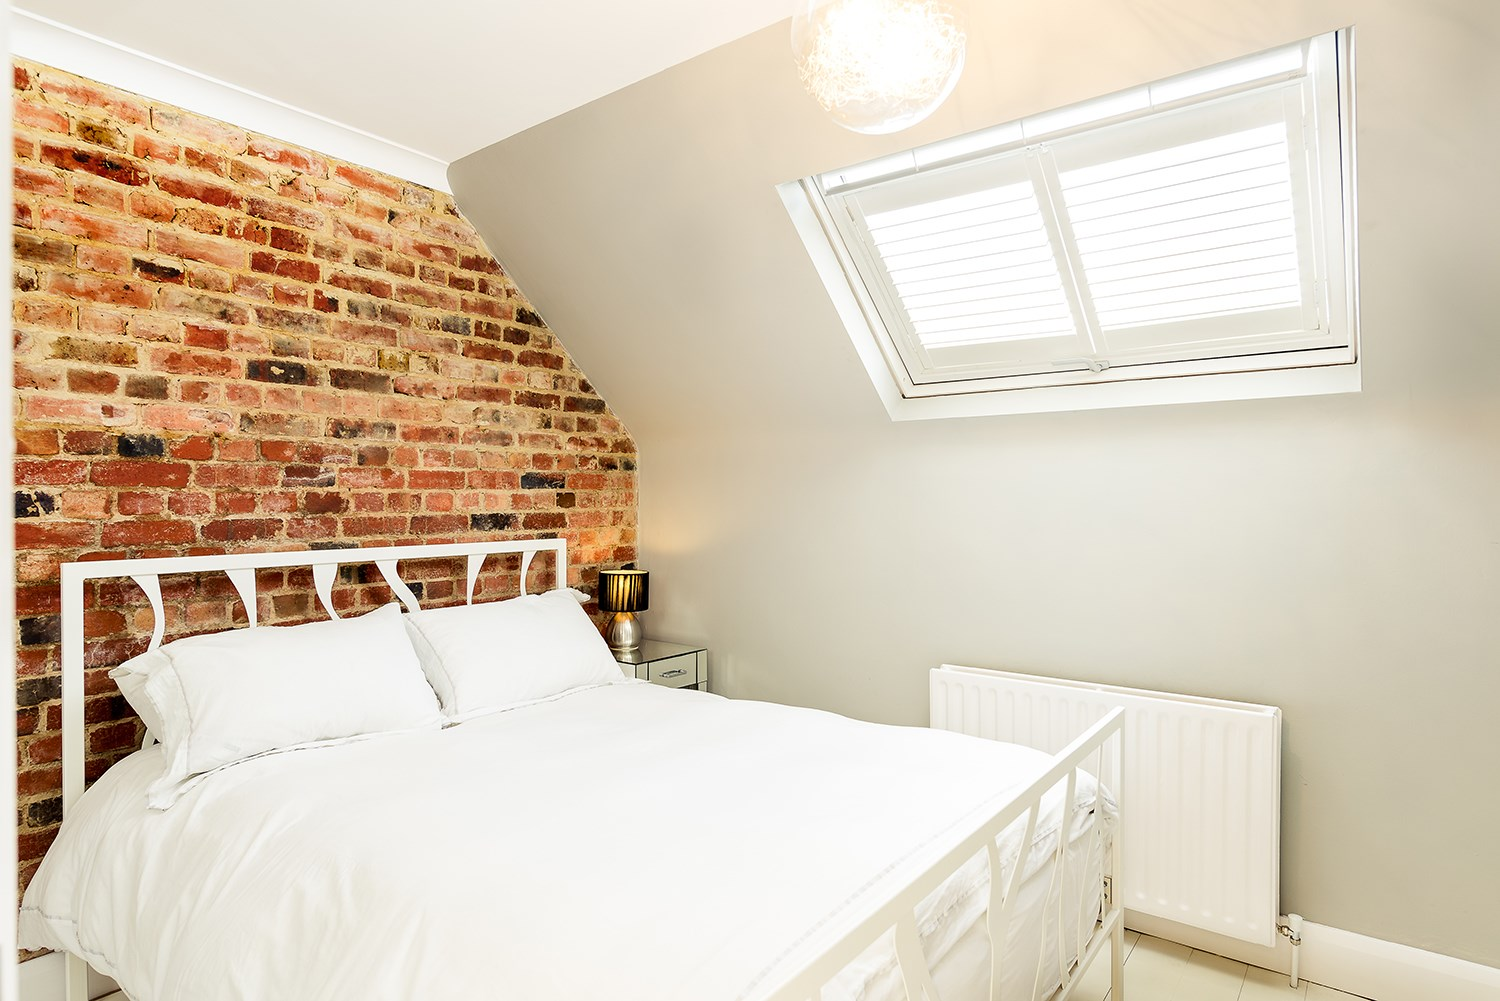 exposed brick wall in loft bedroom with skylight